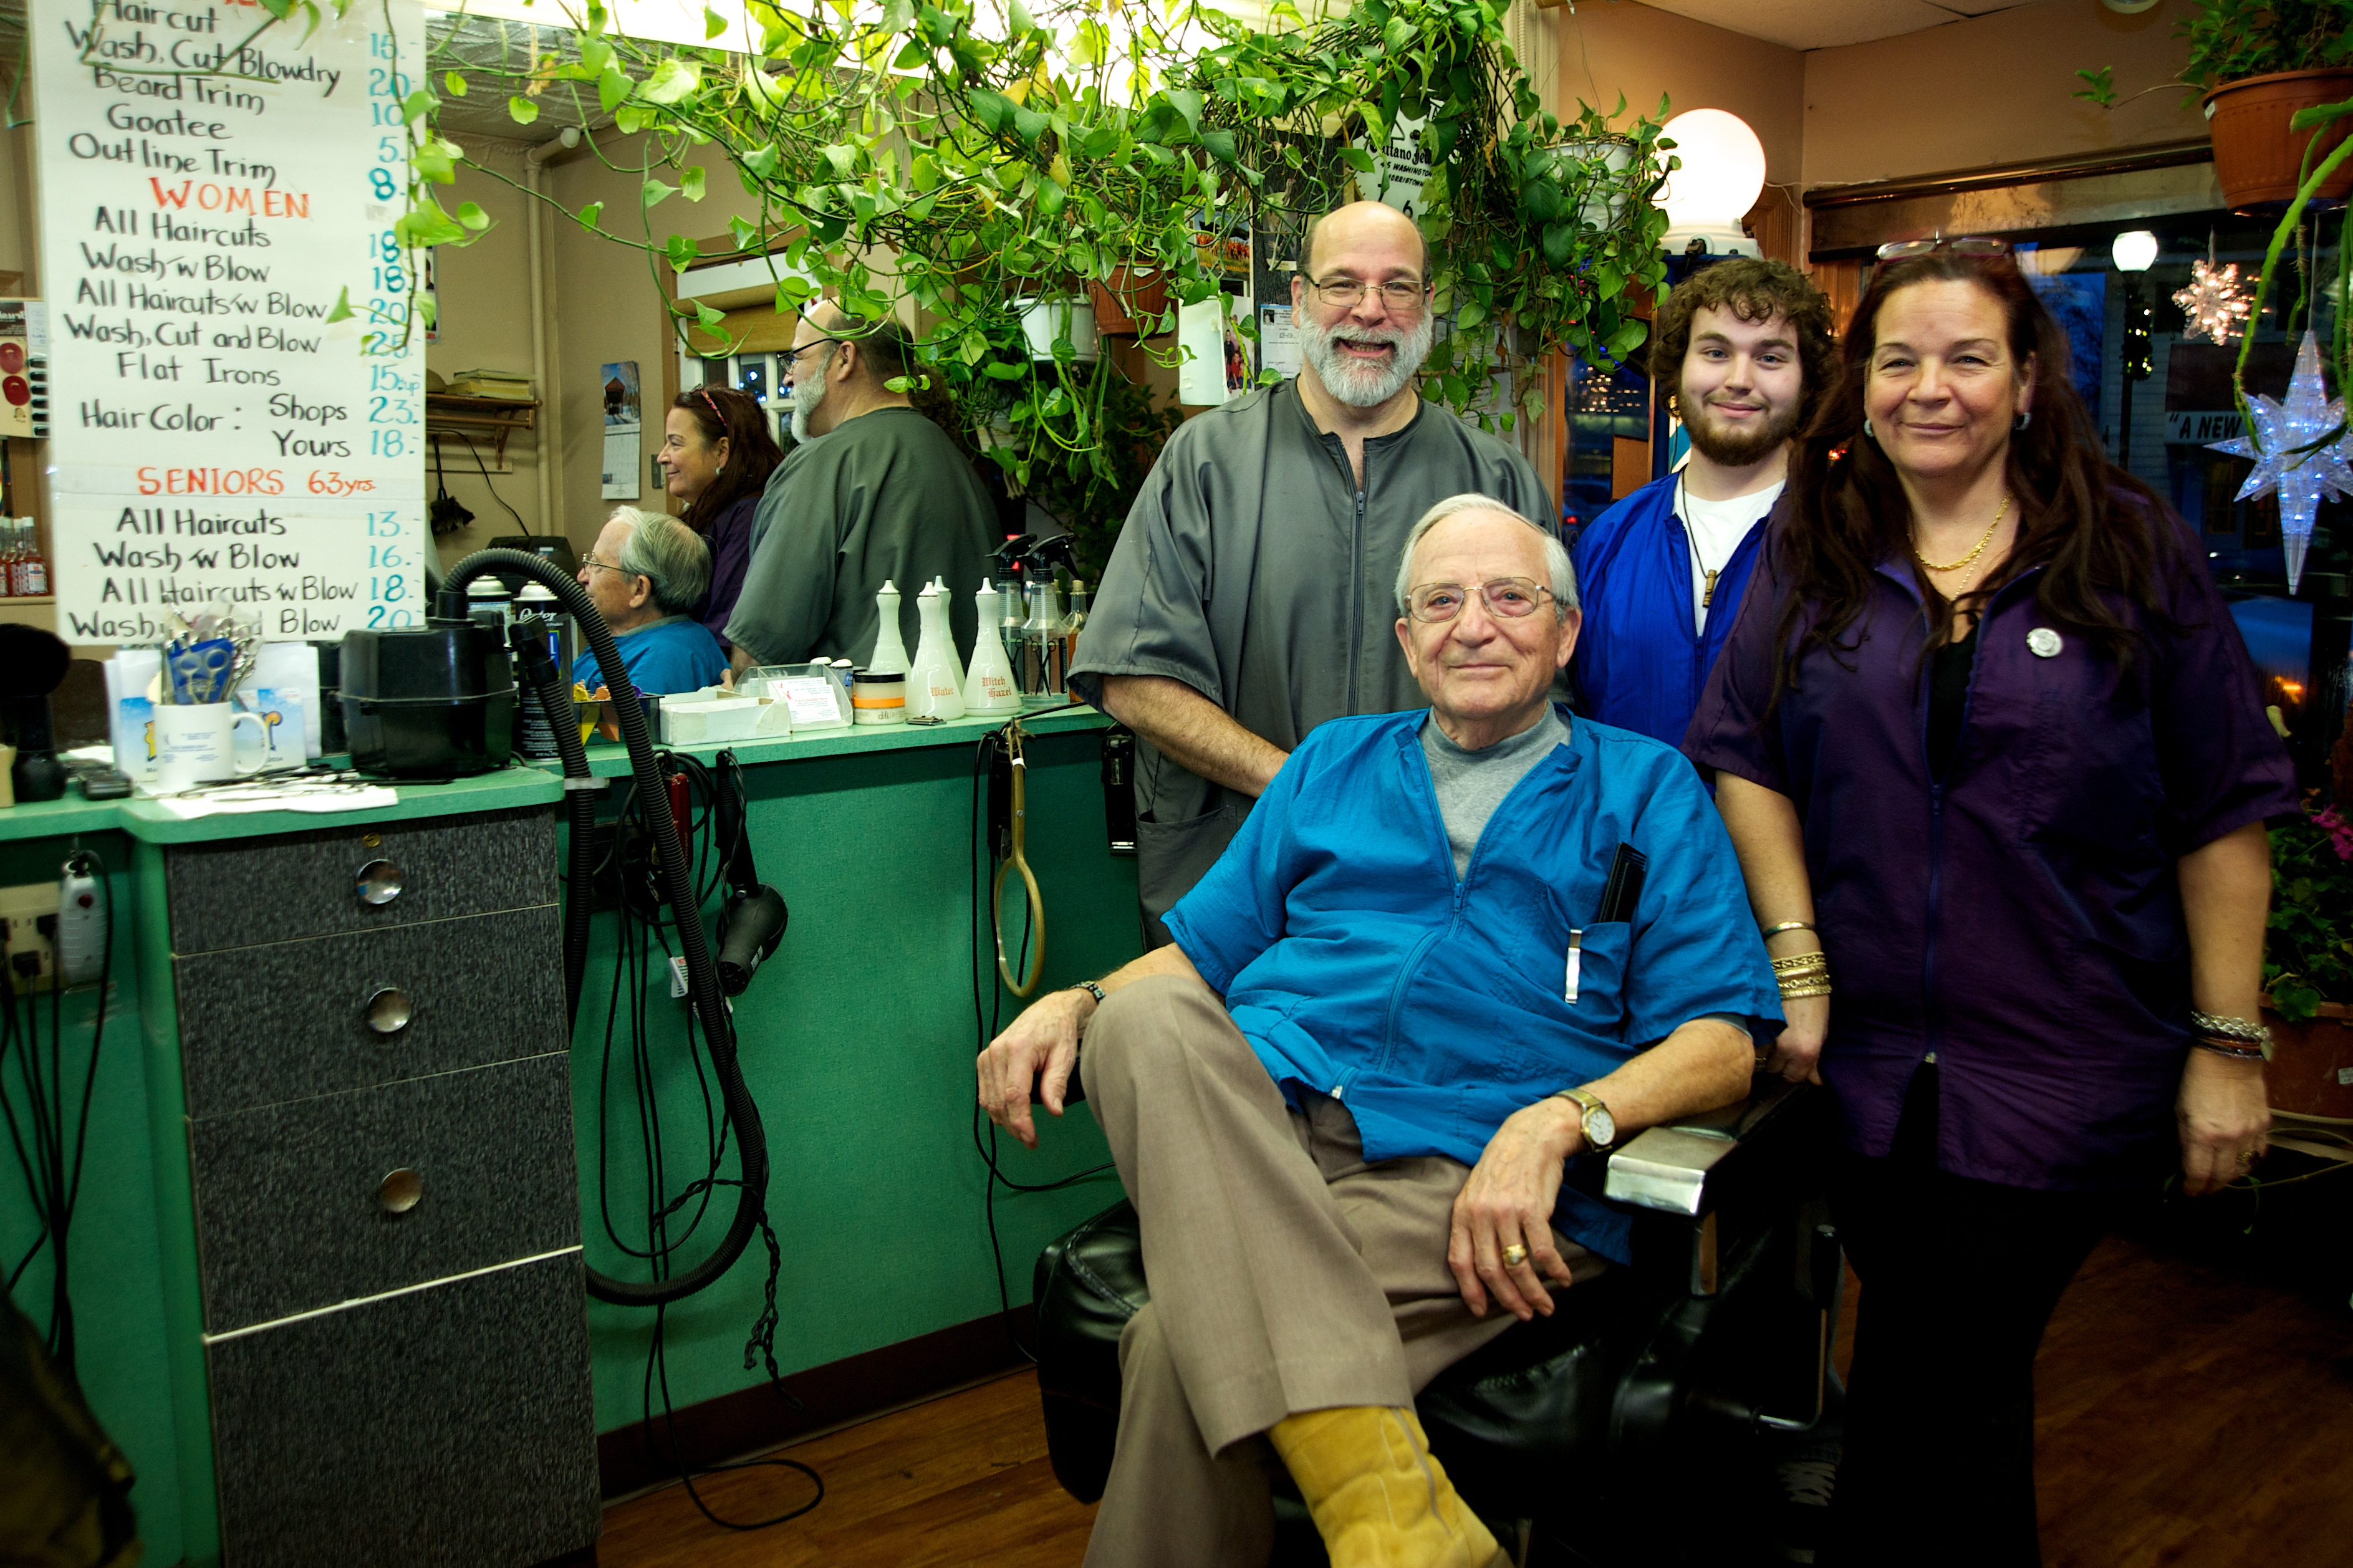 Barber Shop Edison Nj : Plaza Barber Shop of Morristown Adds 4th Generation of Barbers and ...